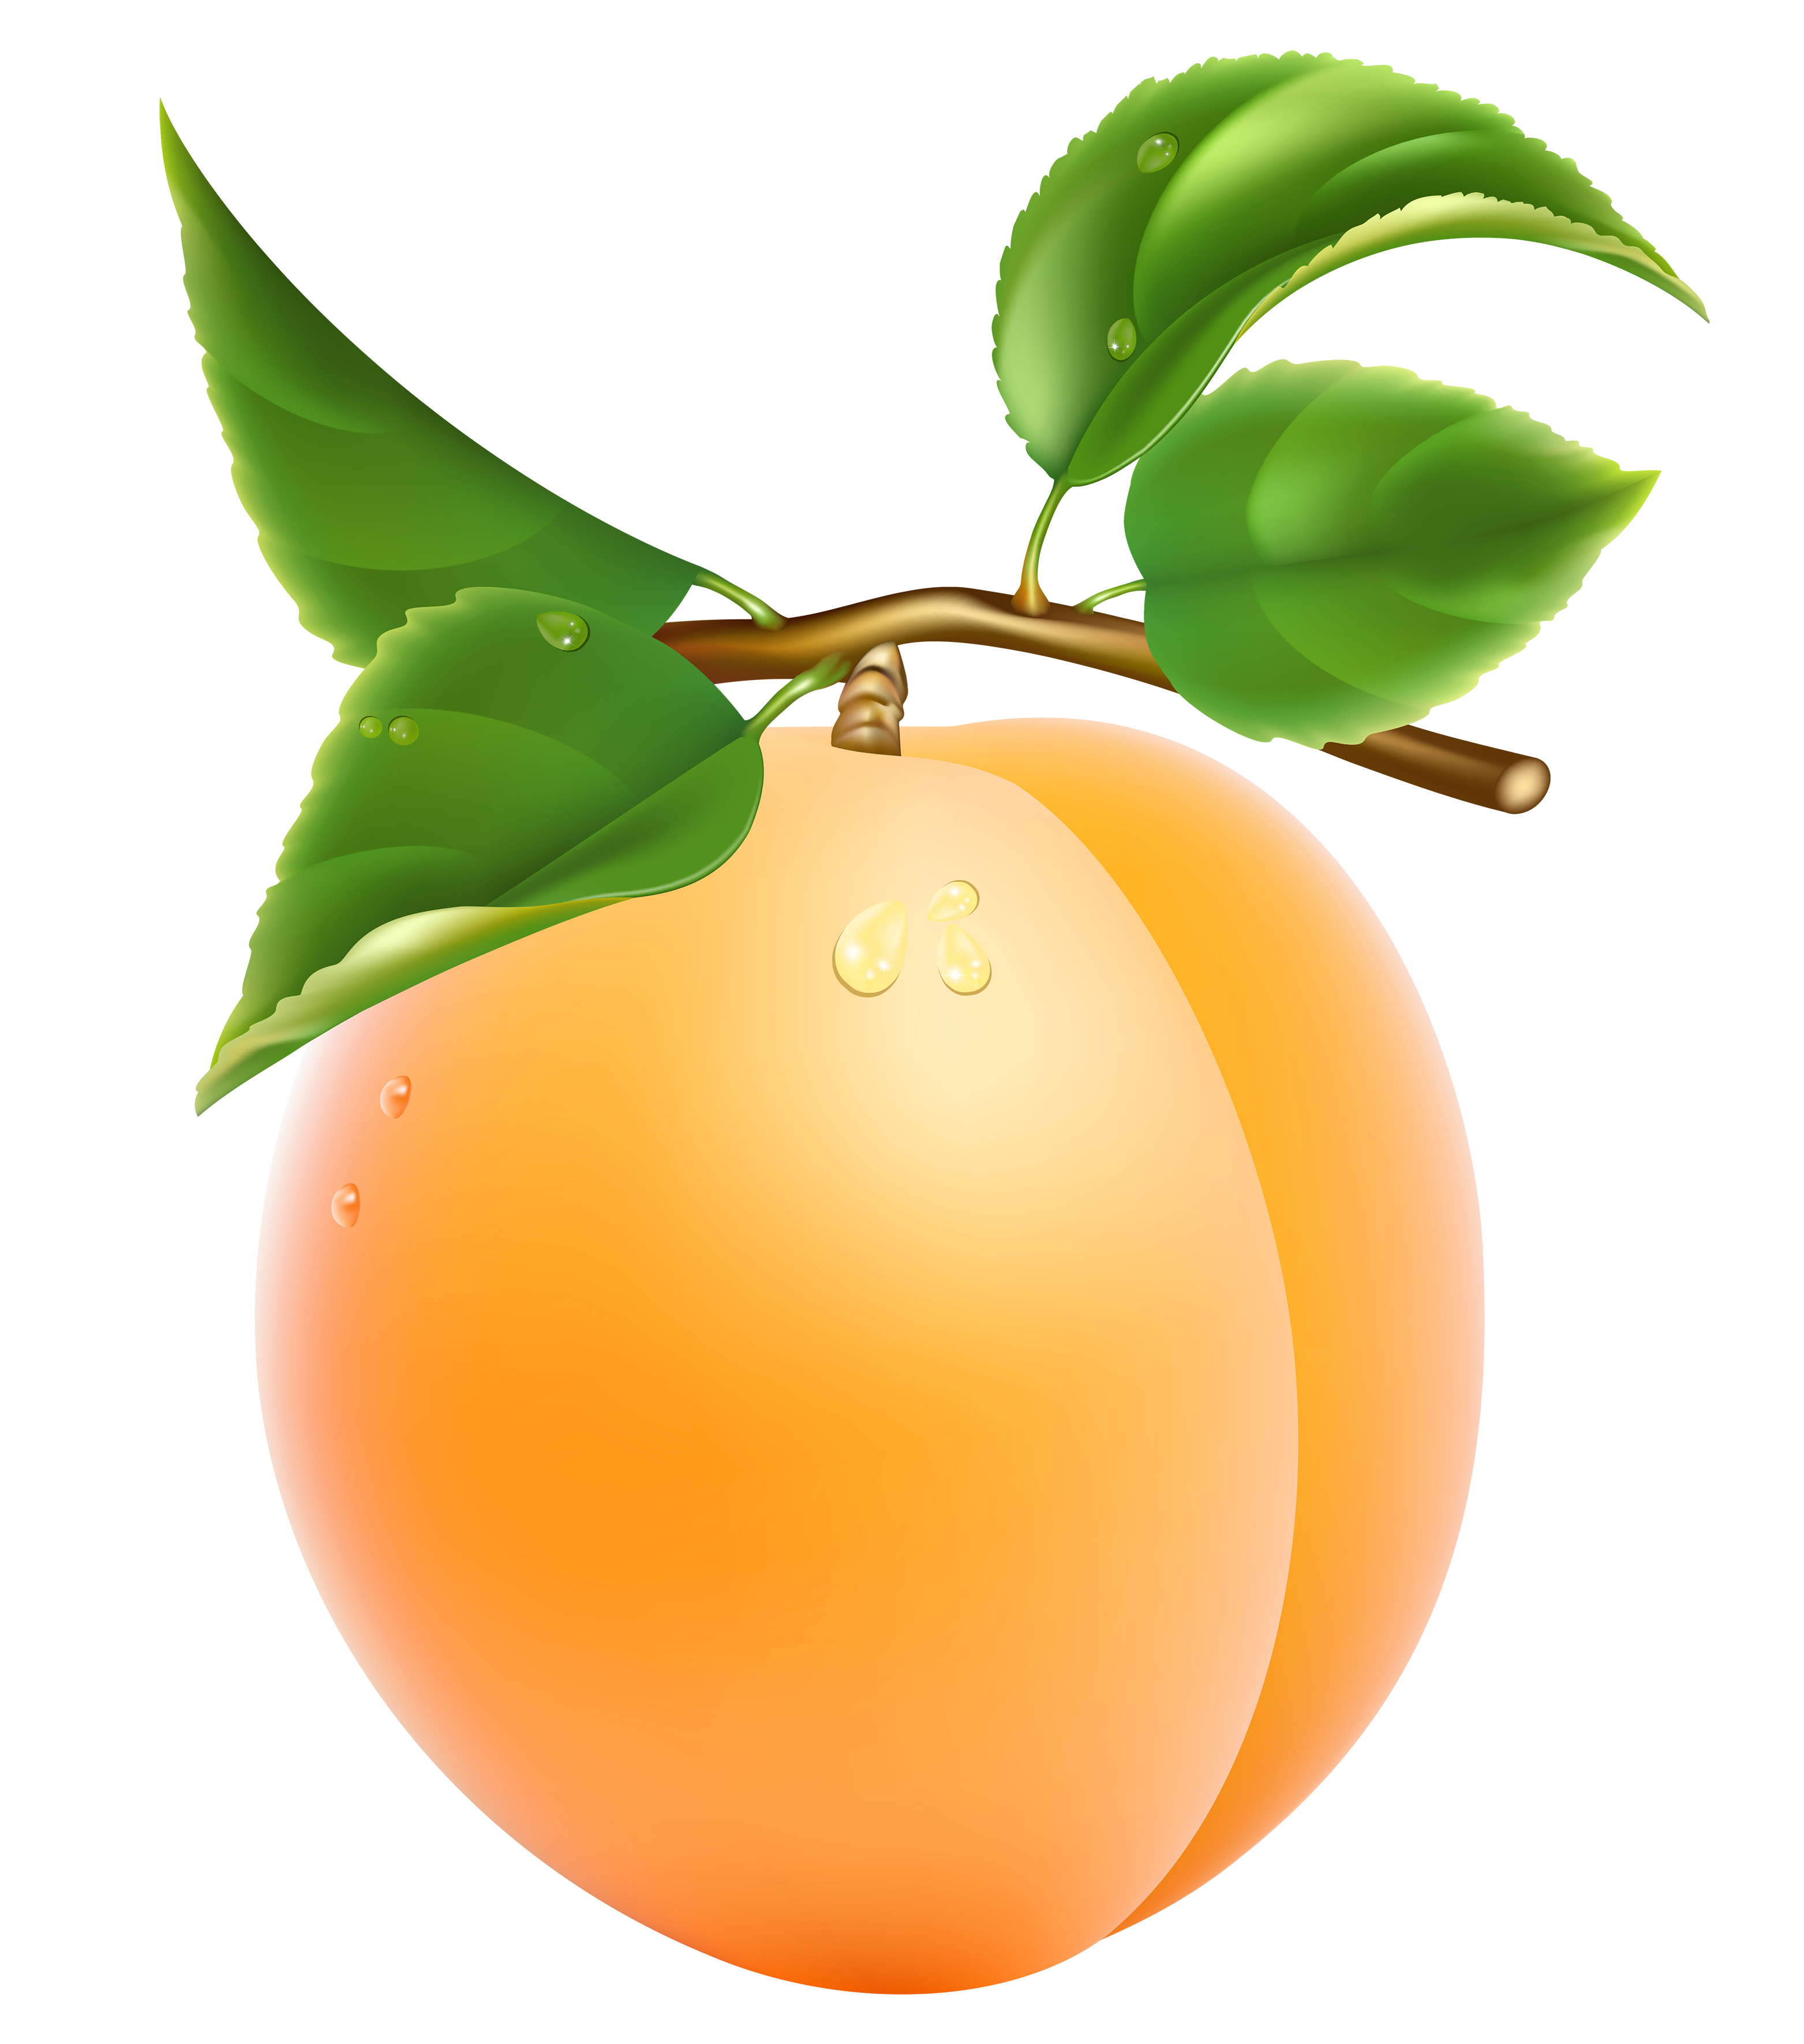 Apricot clipart #1, Download drawings